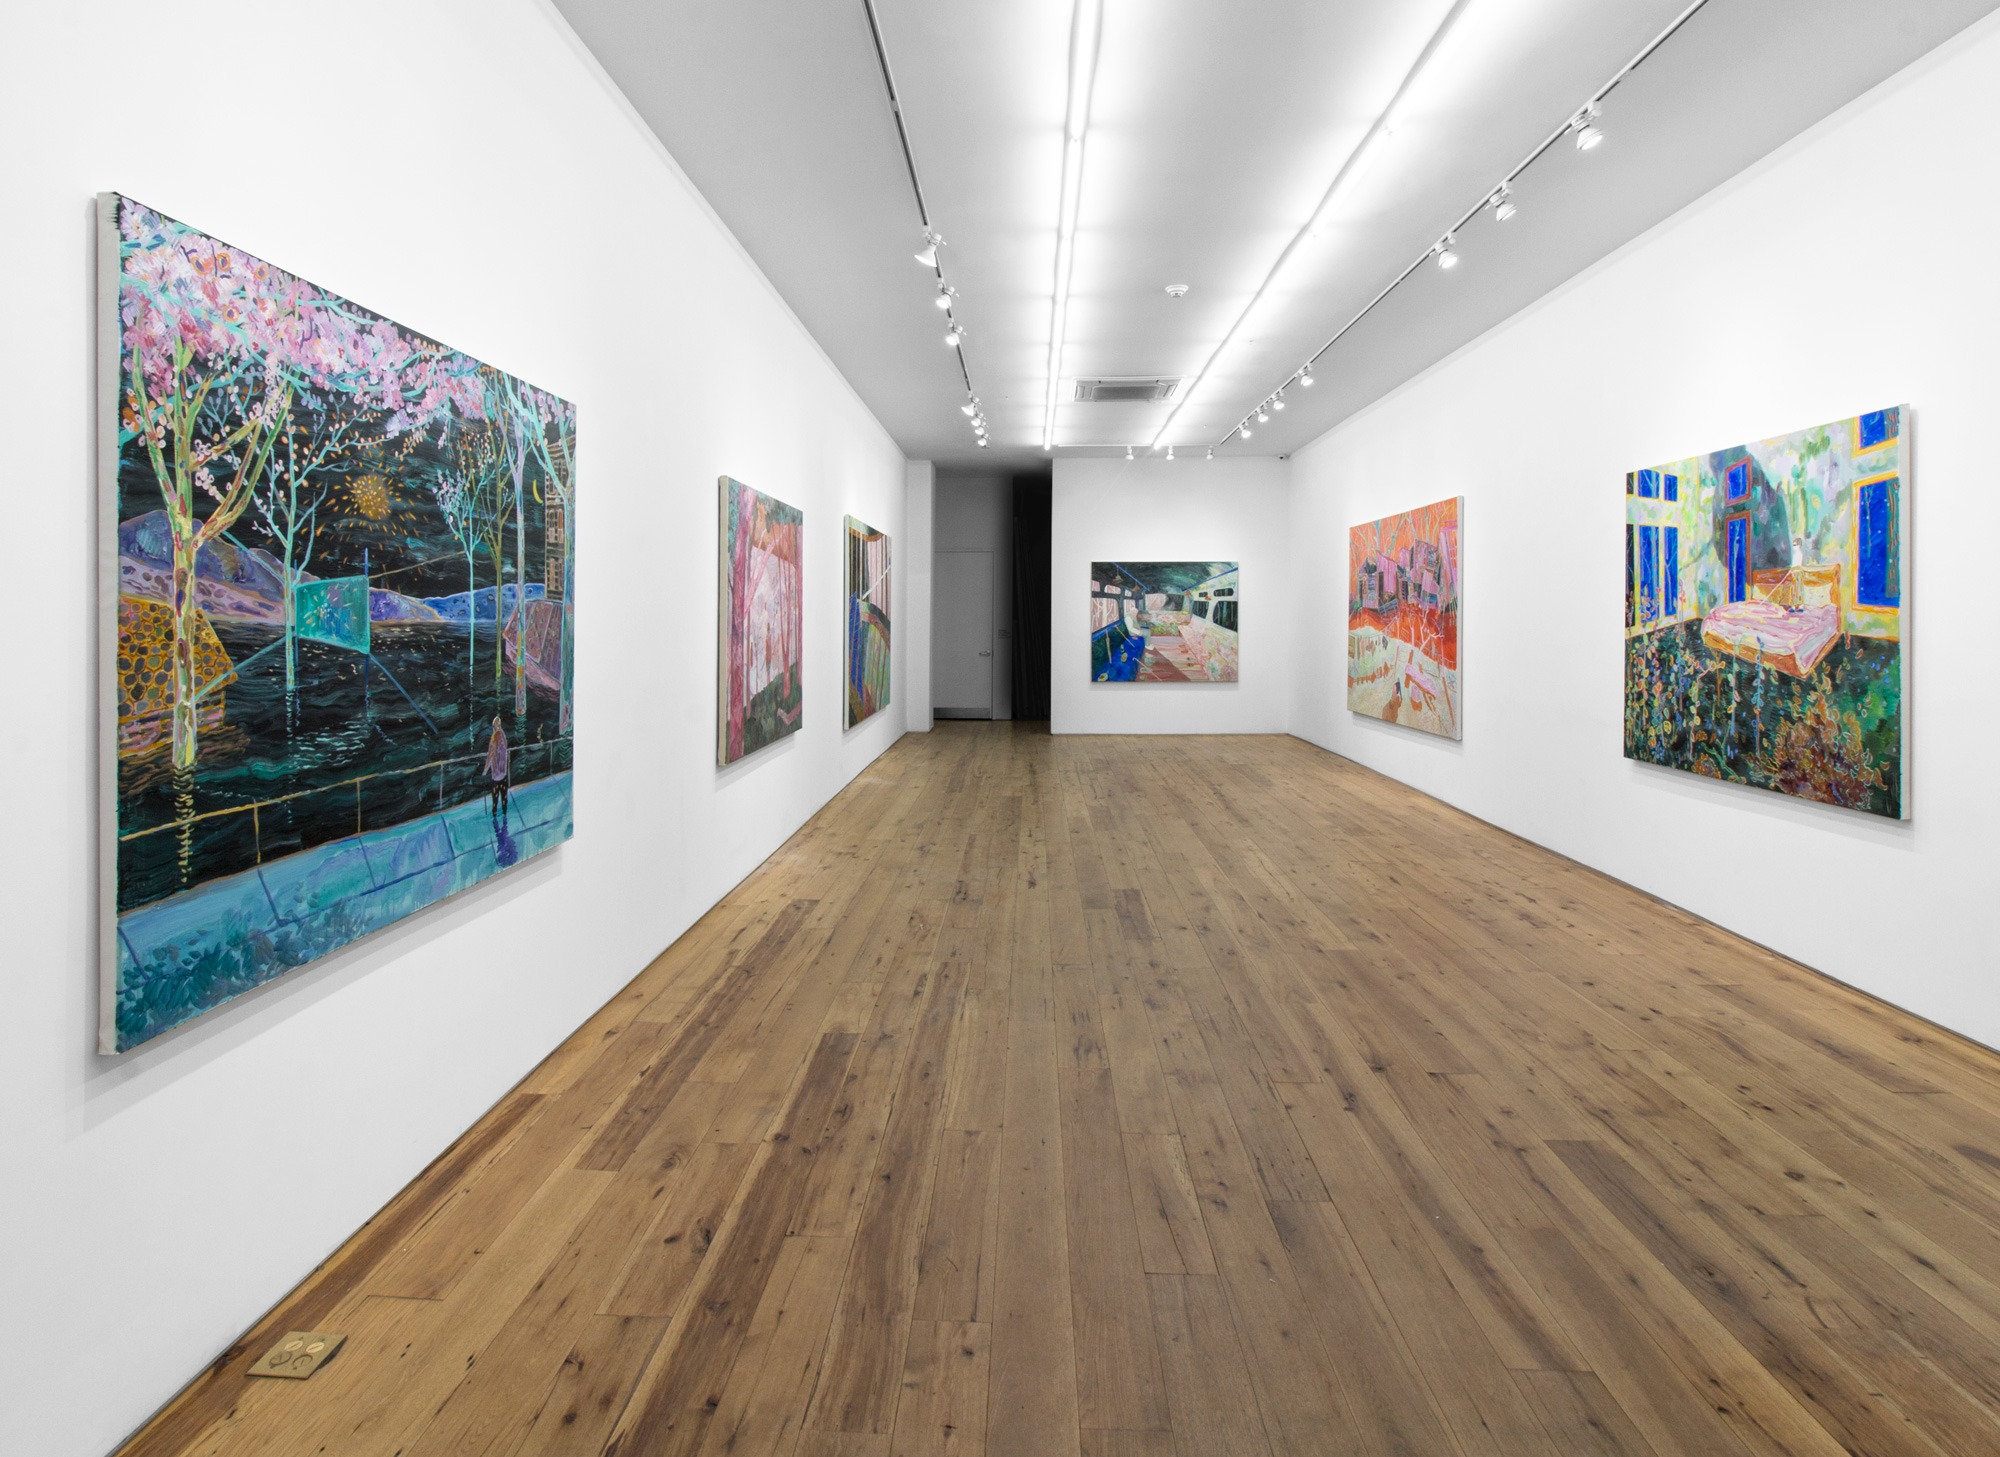 Xi Zhang Exhibition at Marc Straus Gallery 2018